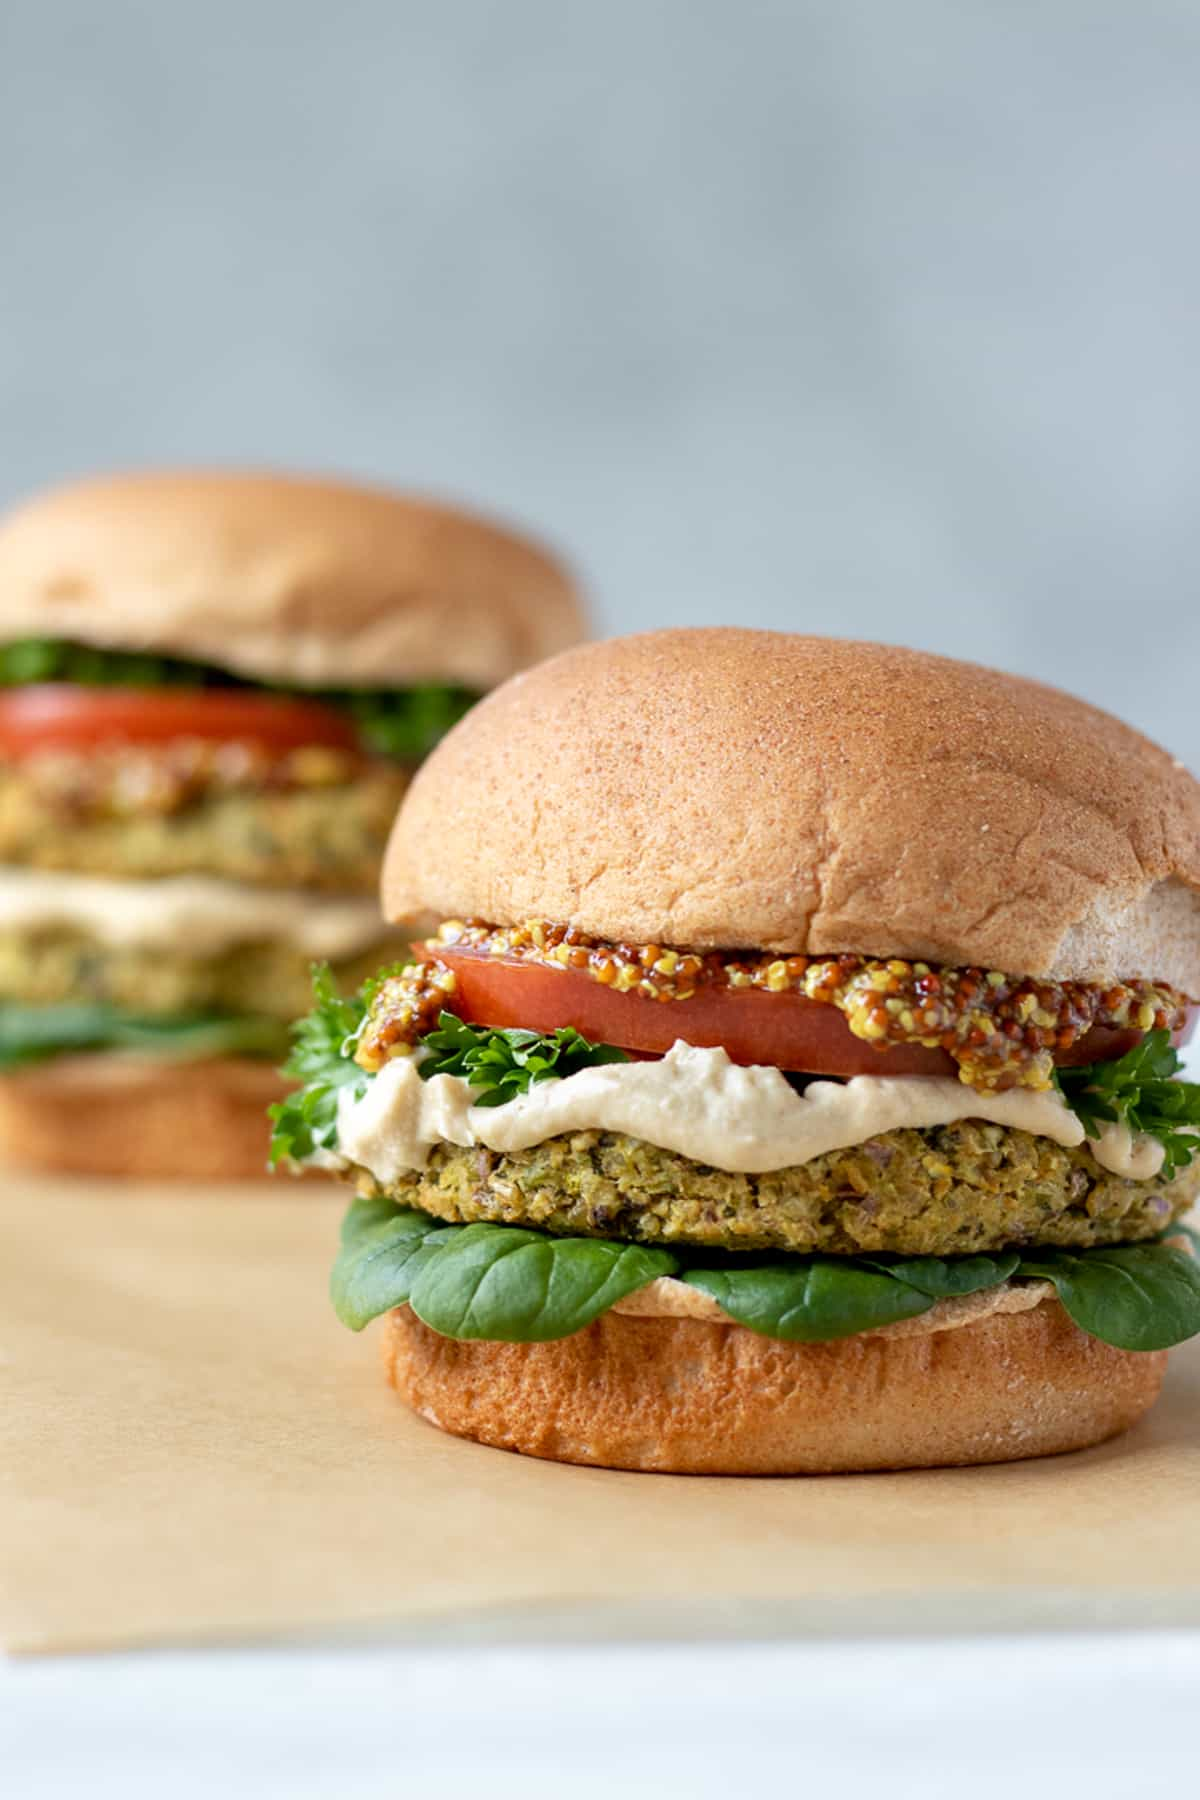 bean burgers on buns loaded with toppings.